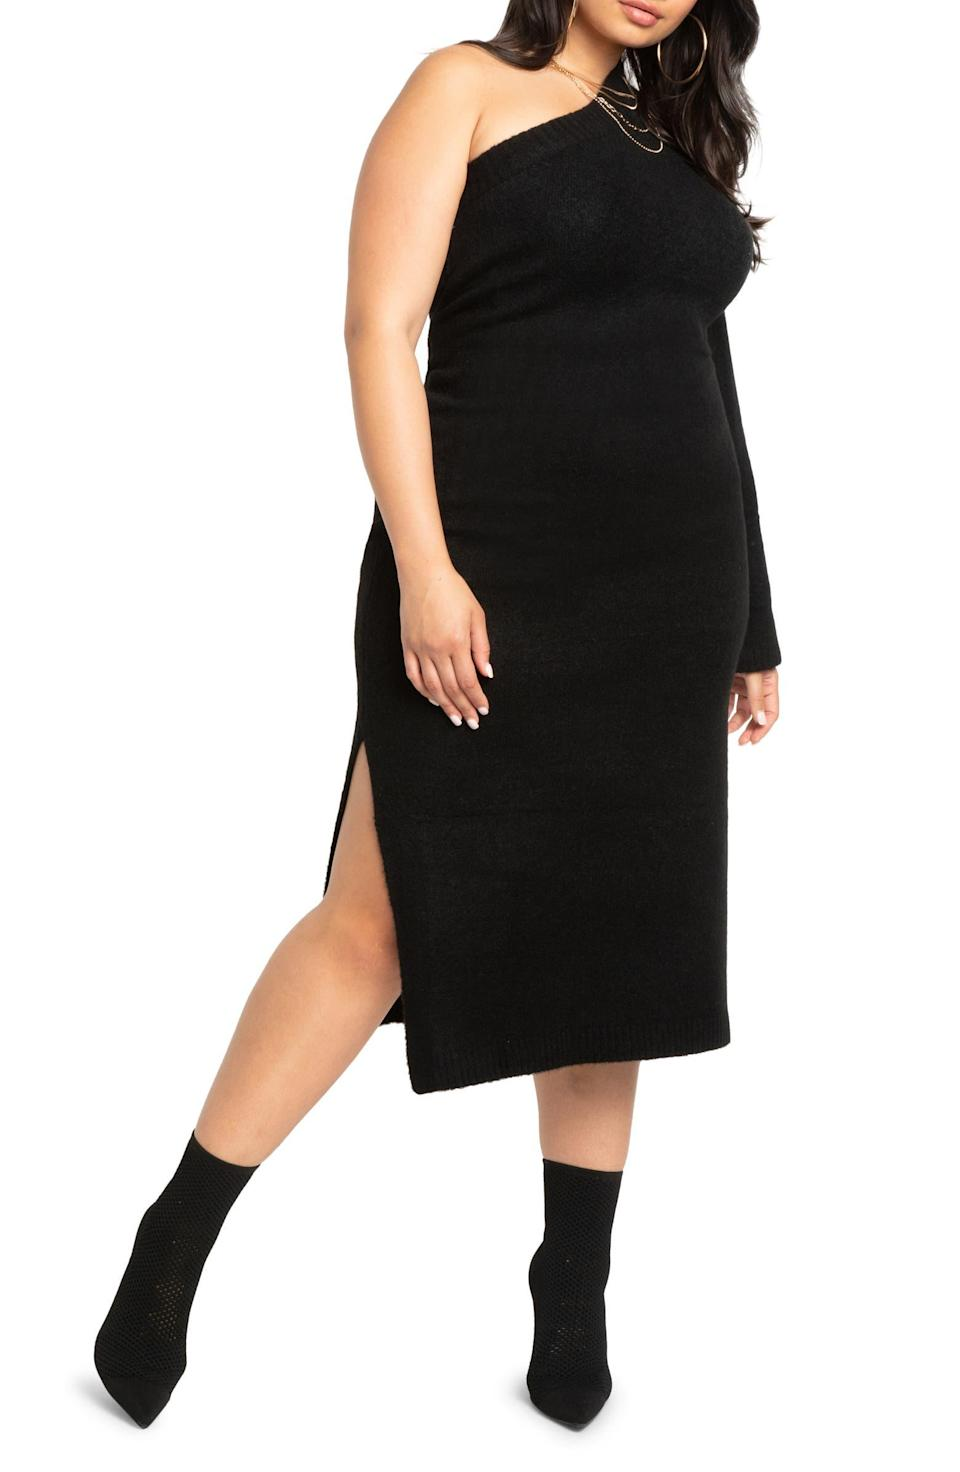 """<h2>Eloquii One-Shoulder Sweater Dress </h2><br><strong>Best Plus-Sized Ribbed Knit Sweater Dress </strong><br><em>Size Range: 14-28</em><br><br>Who says you can't show a little skin in winter? This dress proves that notion wrong with an asymmetrical neckline that won't leave you completely in the cold <em>or</em> too bundled up. Just note that, while the dress is machine-washable, you will need to airdry it after. <br> <br><em>Shop <strong><a href=""""https://go.skimresources.com/?id=30283X879131&isjs=1&jv=15.2.0-stackpath&sref=https%3A%2F%2Fwww.refinery29.com%2Fen-us%2Fplus-size-sweater-dresses%23slide-1&url=https%3A%2F%2Fwww.nordstrom.com%2Fs%2Feloquii-one-shoulder-sweater-dress-plus-size%2F6453923&xguid=01ERGDHBXNJ489J9KBAH8RZJH0&xs=1&xtz=240&xuuid=13a7fbd9948972339c551d8b8235af4b&xjsf=other_click__contextmenu%20%5B2%5D"""" rel=""""nofollow noopener"""" target=""""_blank"""" data-ylk=""""slk:Nordstrom"""" class=""""link rapid-noclick-resp"""">Nordstrom </a></strong></em><br><br><strong>Eloquii</strong> One-Shoulder Sweater Dress, $, available at <a href=""""https://go.skimresources.com/?id=30283X879131&url=https%3A%2F%2Fwww.nordstrom.com%2Fs%2Feloquii-one-shoulder-sweater-dress-plus-size%2F6453923"""" rel=""""nofollow noopener"""" target=""""_blank"""" data-ylk=""""slk:Nordstrom"""" class=""""link rapid-noclick-resp"""">Nordstrom</a>"""